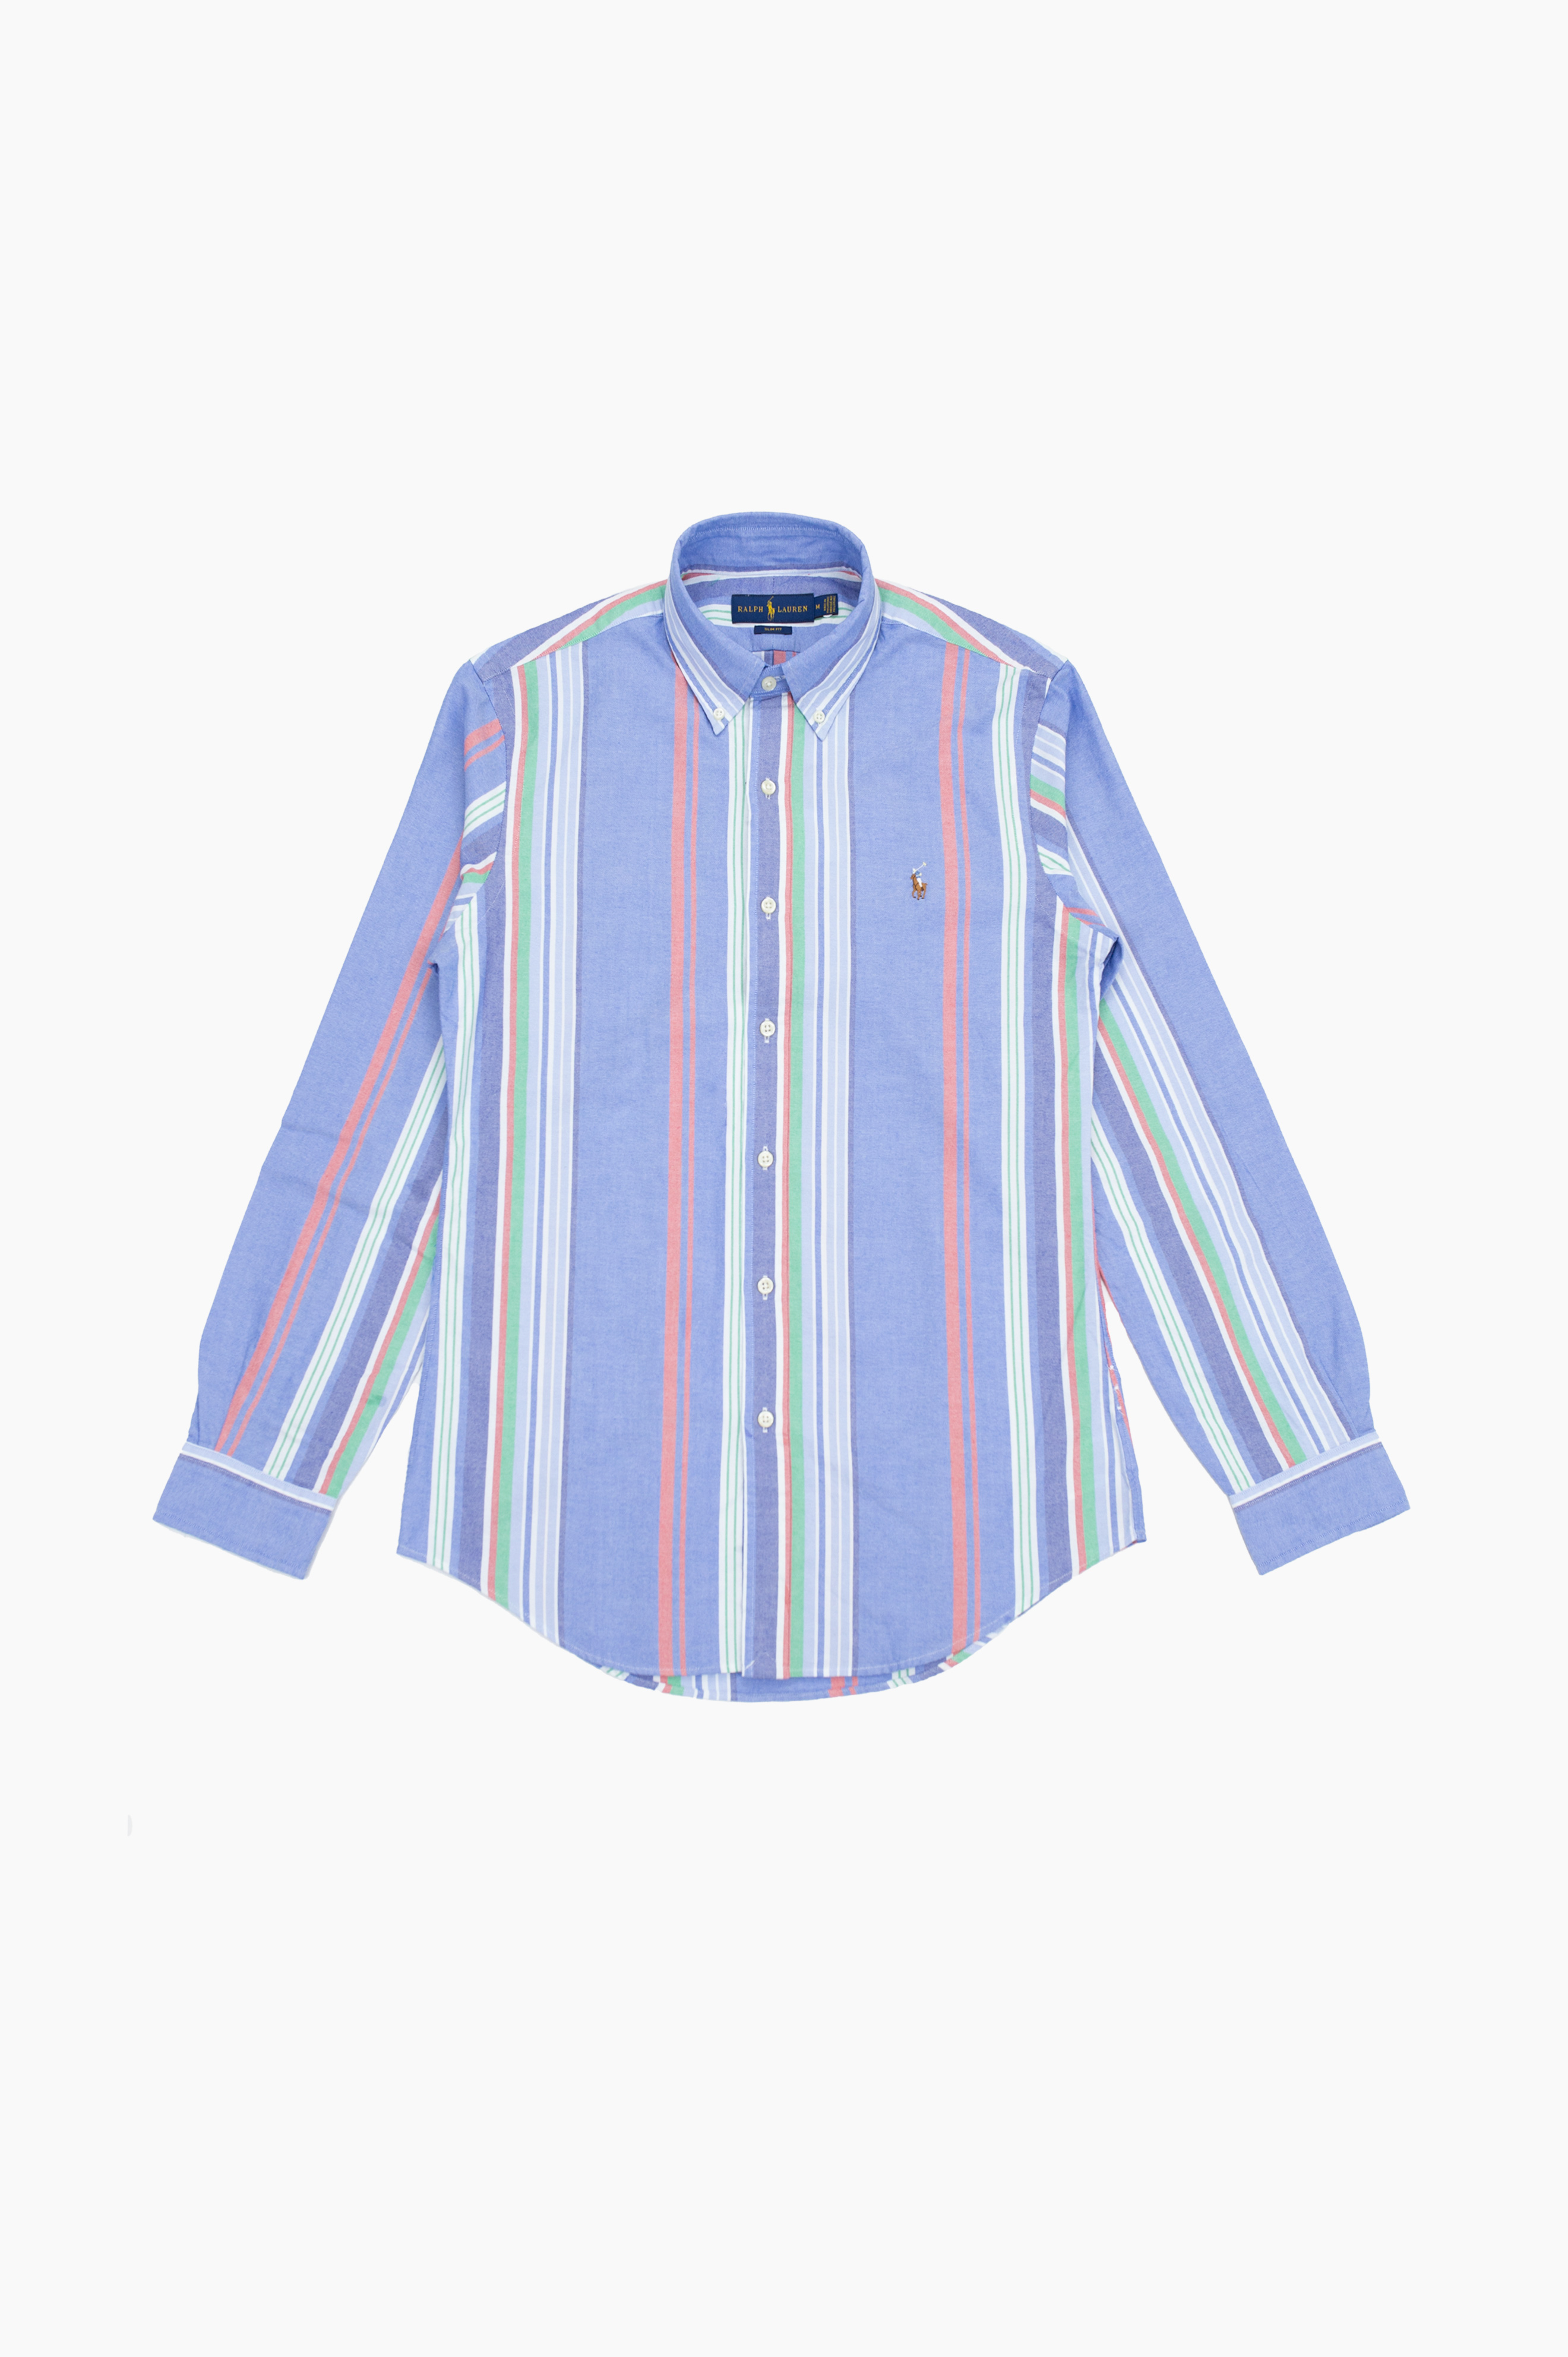 Fun Mix Striped Button Down Shirt Blue